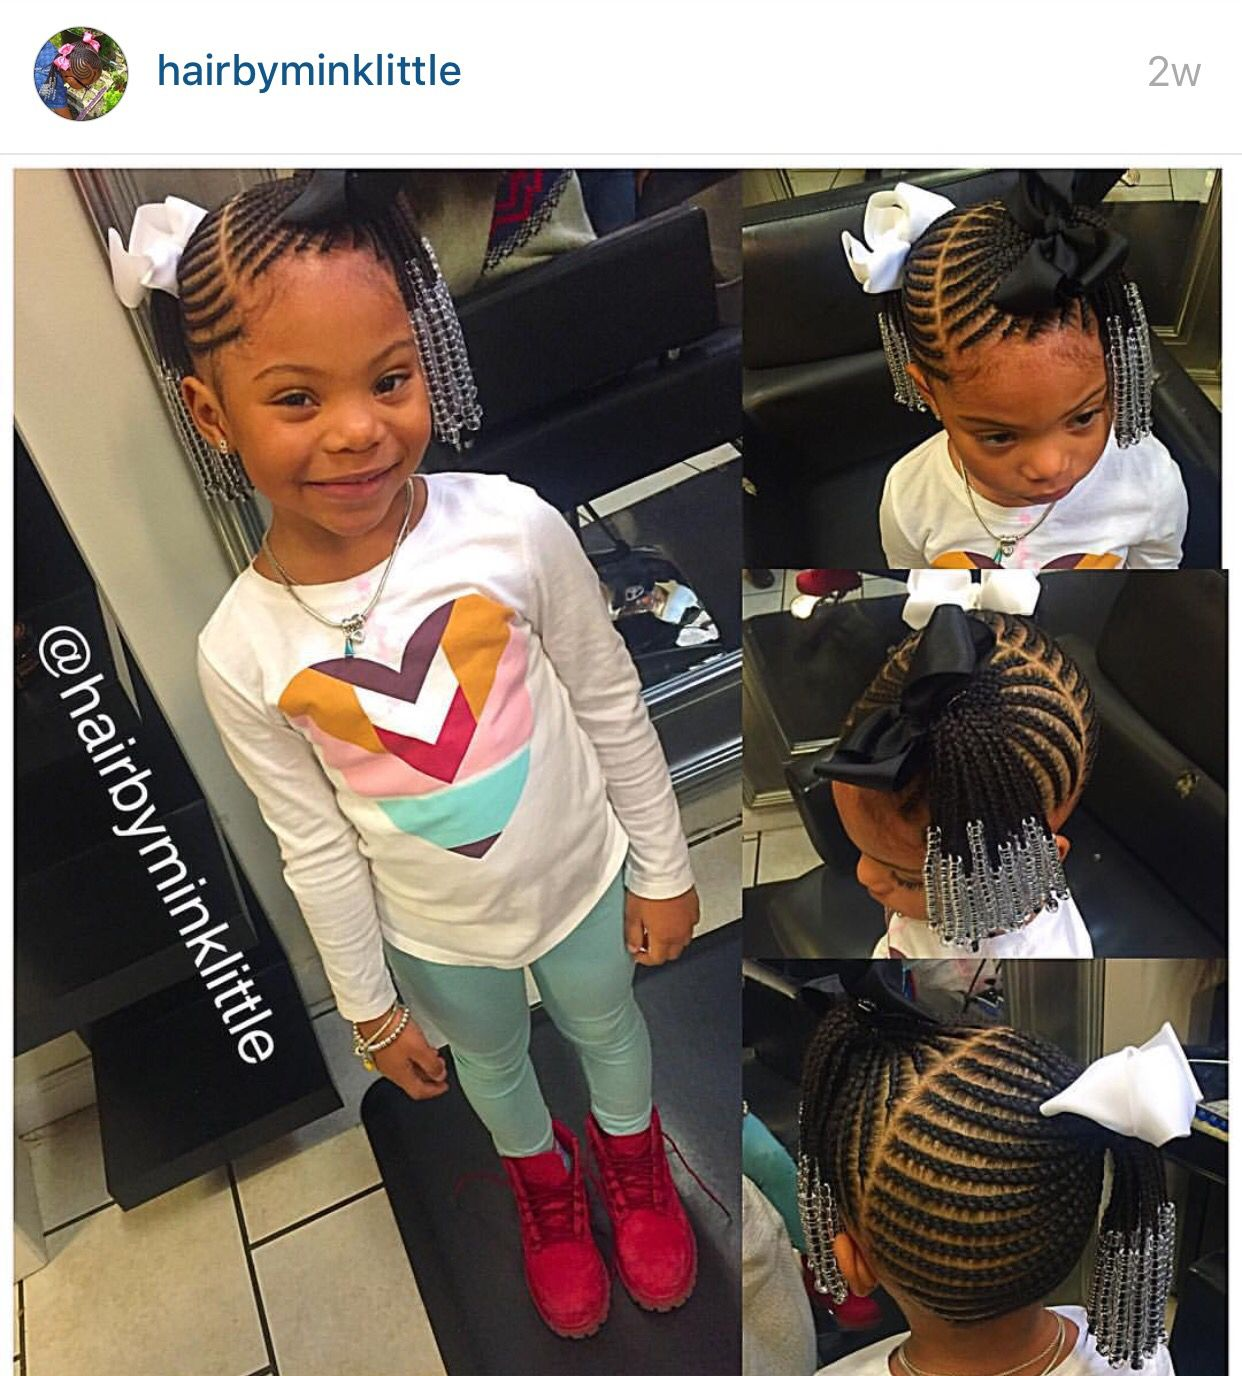 Braid extensions for toddlers